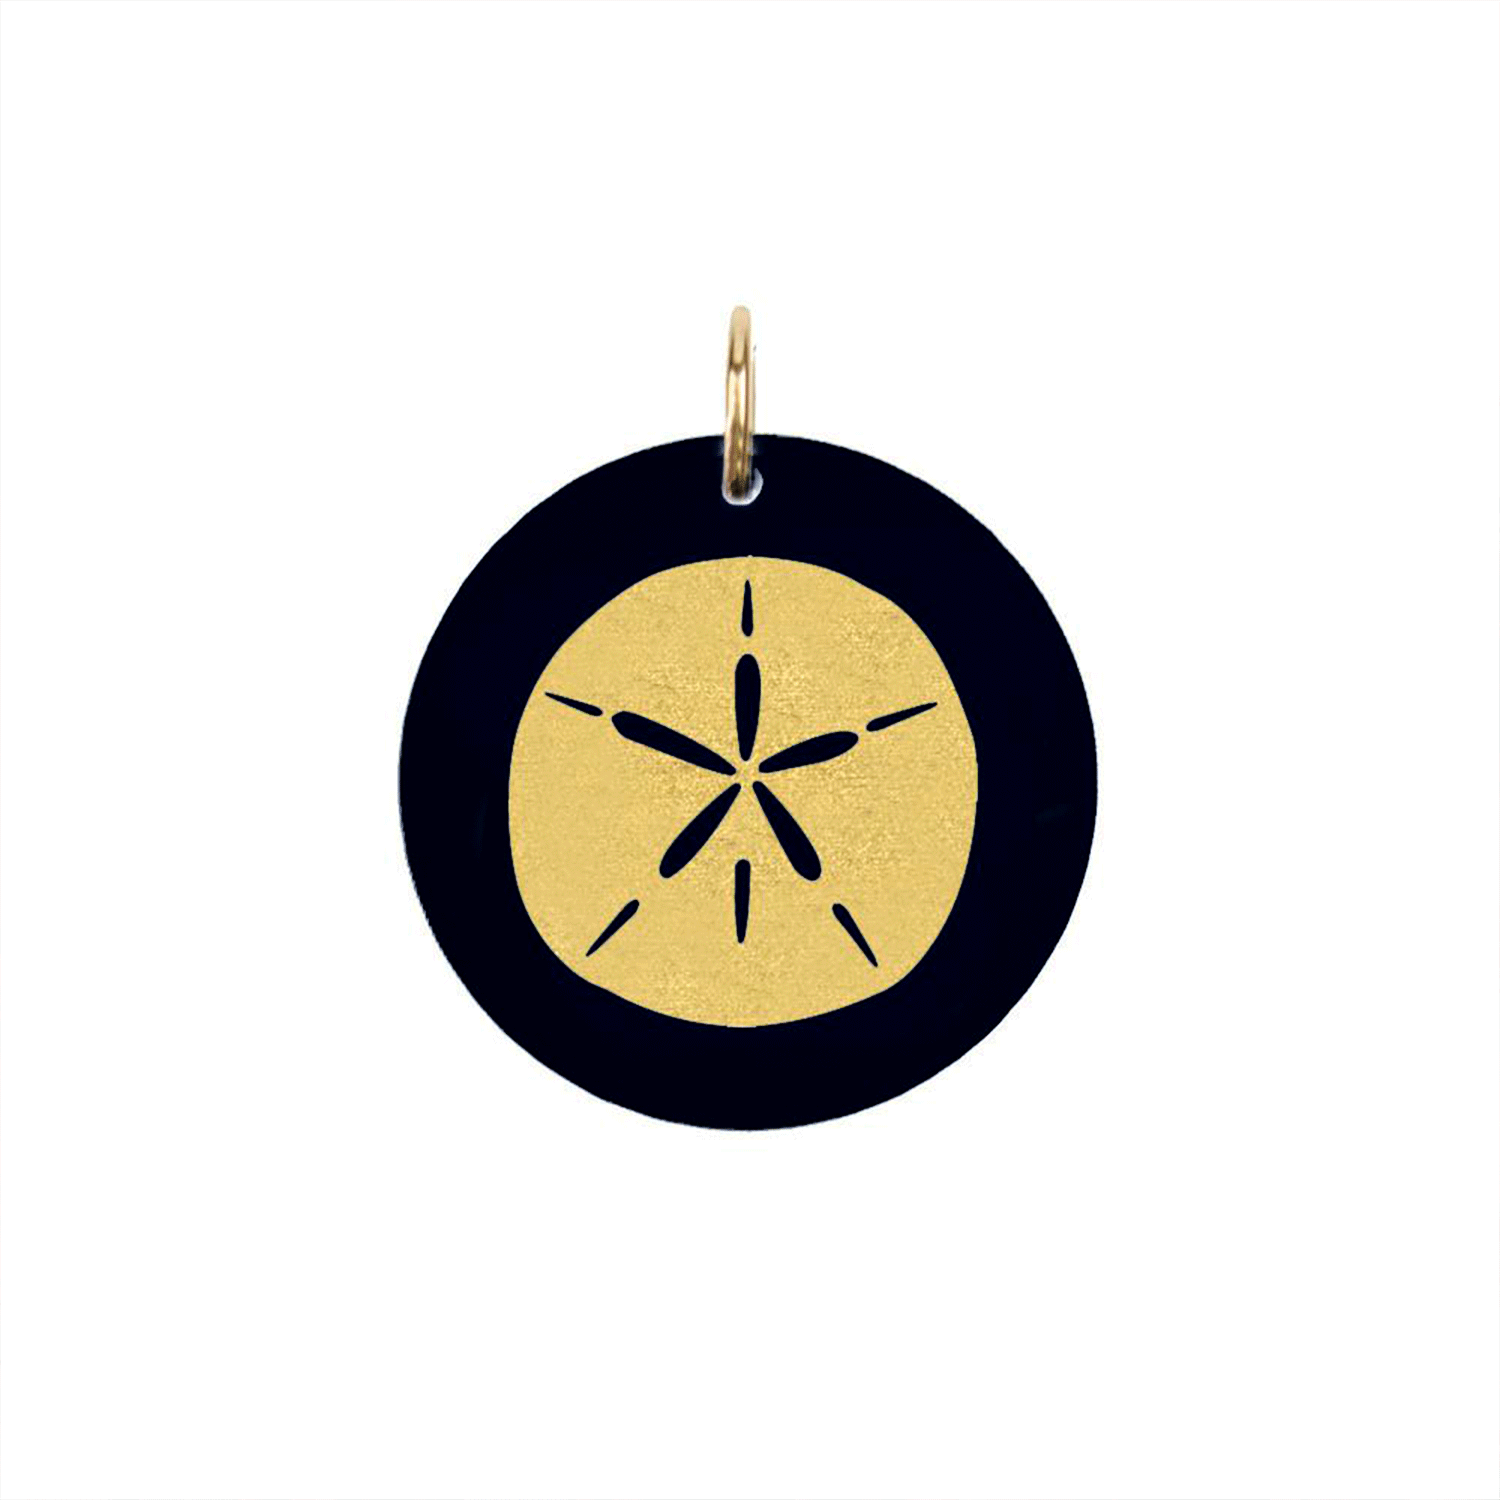 Moon and Lola - Acrylic Eden Charm sand dollar charm on ebony black acrylic